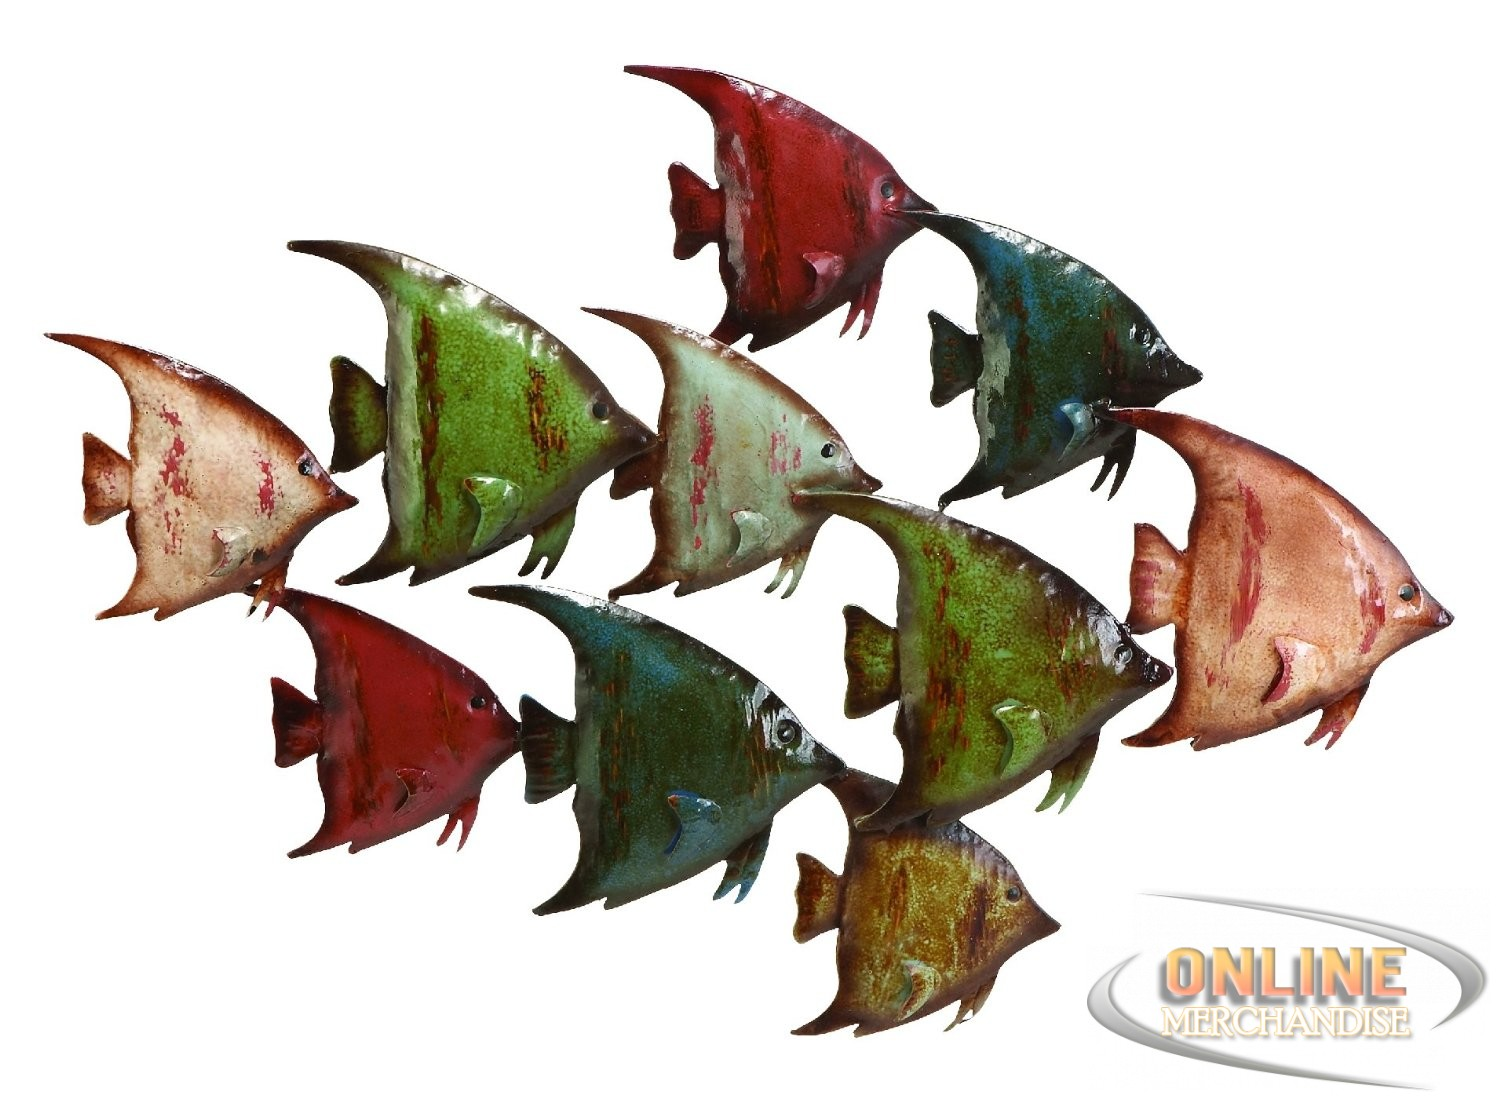 new benzara 63533 coastal fish metal wall nautical decor